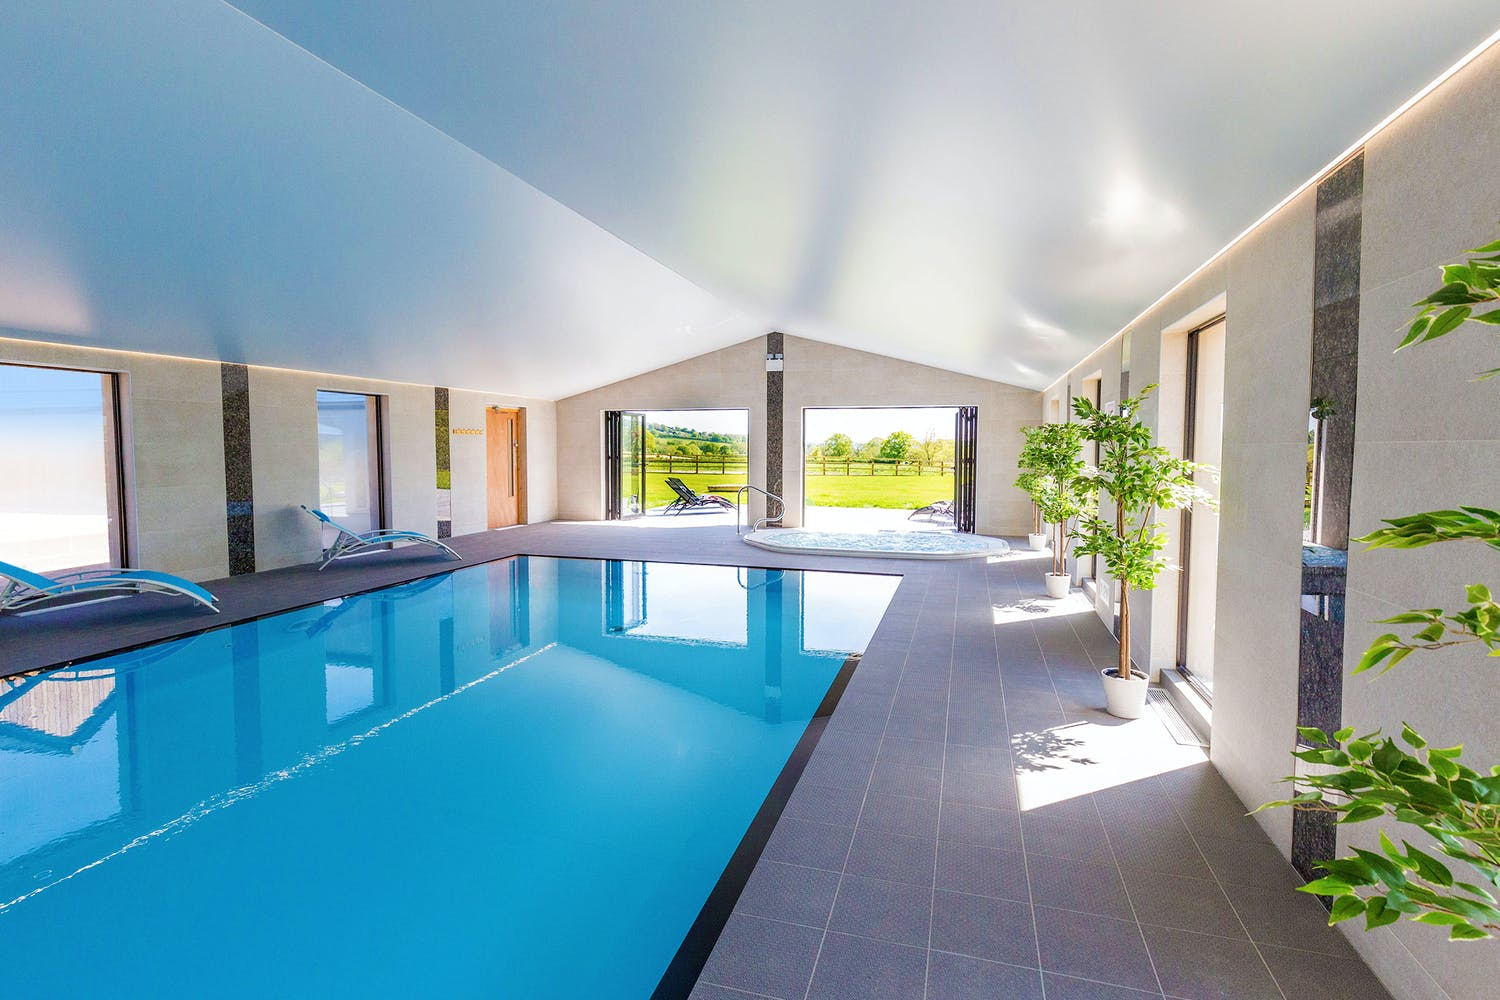 Brilliant Holiday Cottages In Devon With A Swimming Pool Holiday Download Free Architecture Designs Embacsunscenecom